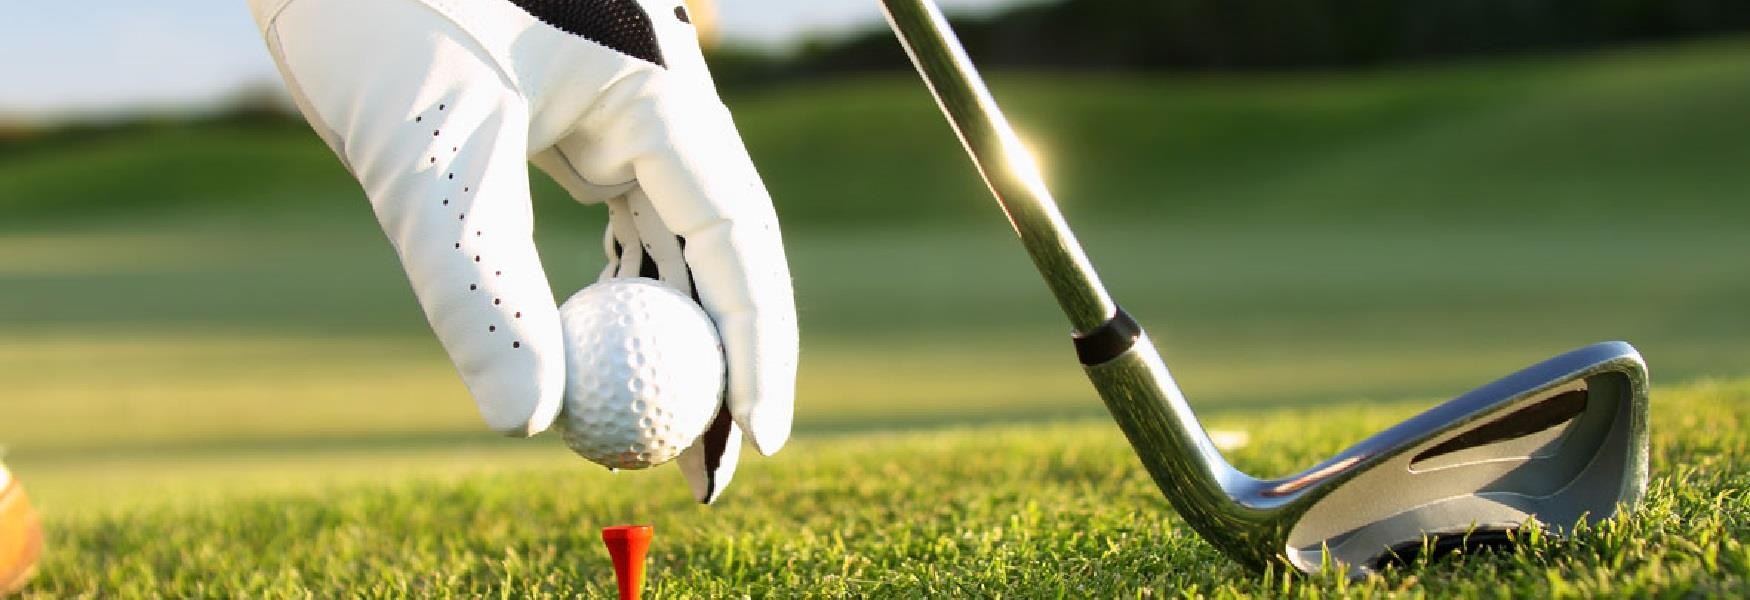 Golfing in Chesterfield Area